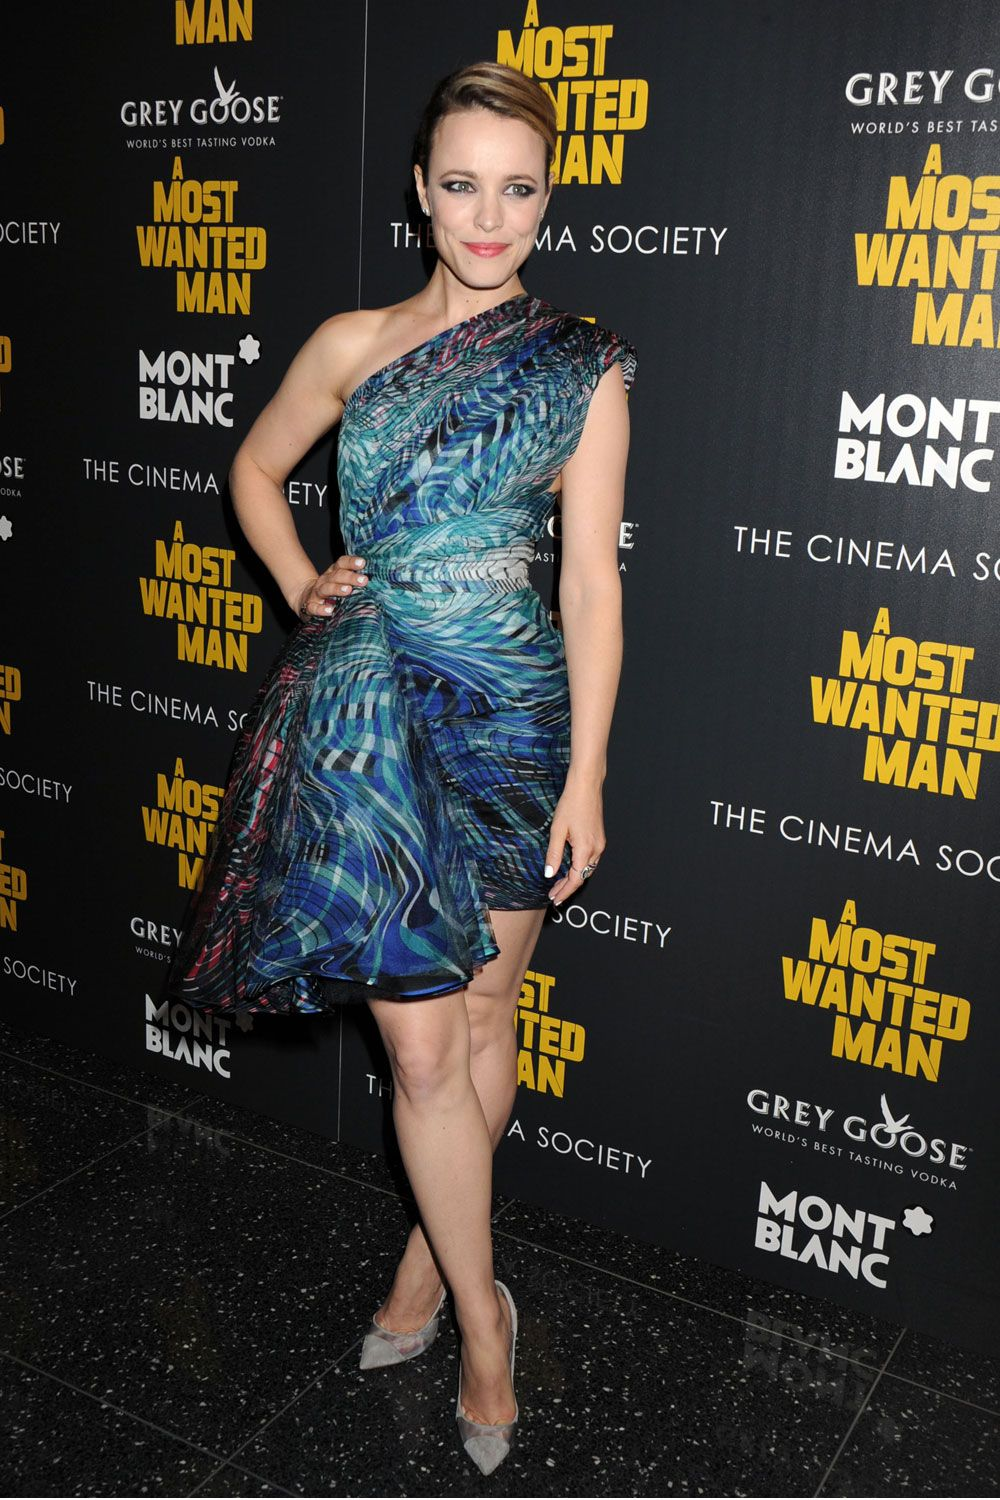 Rachel mcadams attends the premiere of uca most wanted manud held at